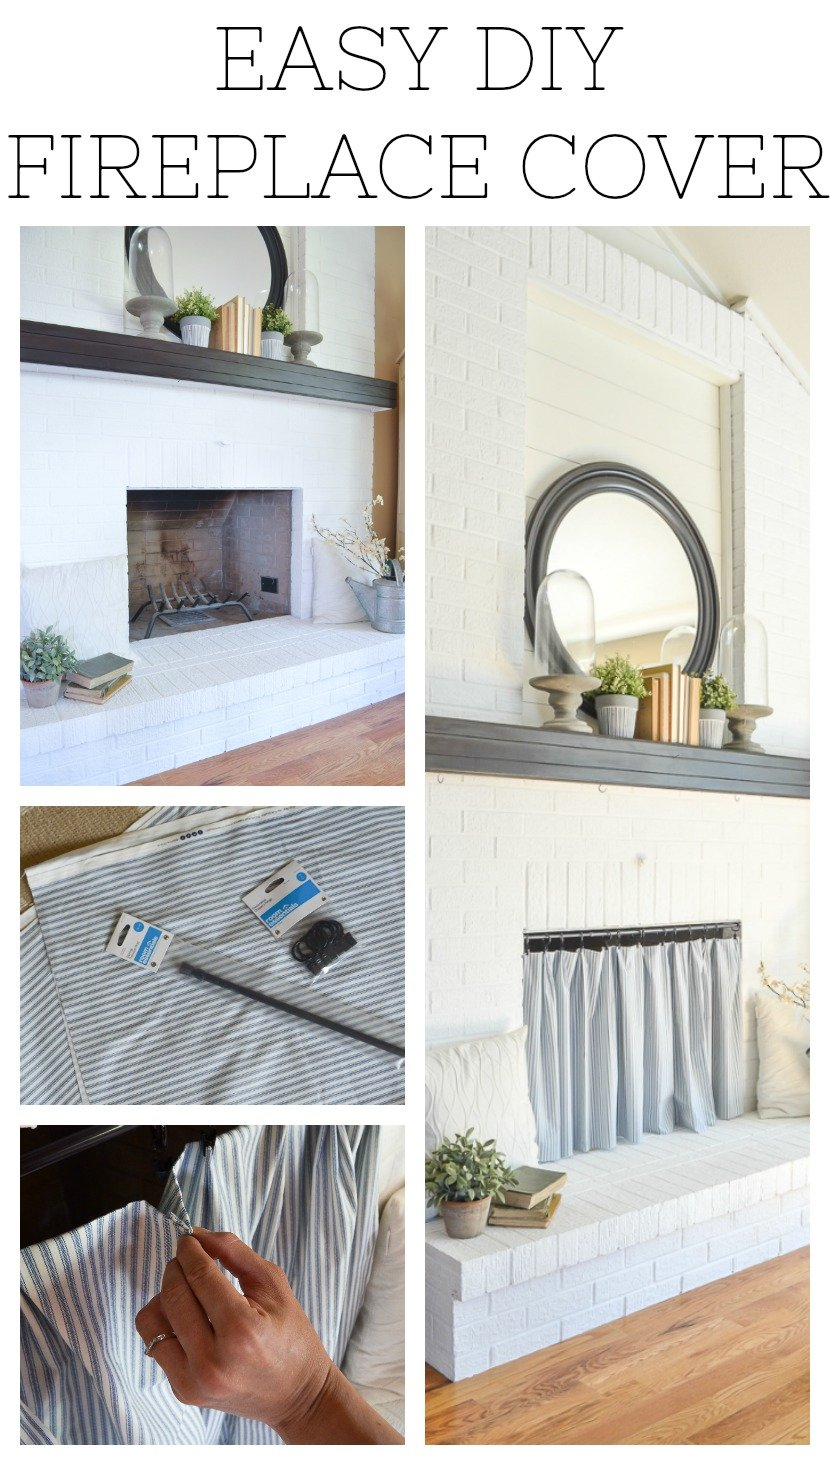 Easy DIY Fireplace Cover. Brilliant idea to hide an ugly fireplace opening!